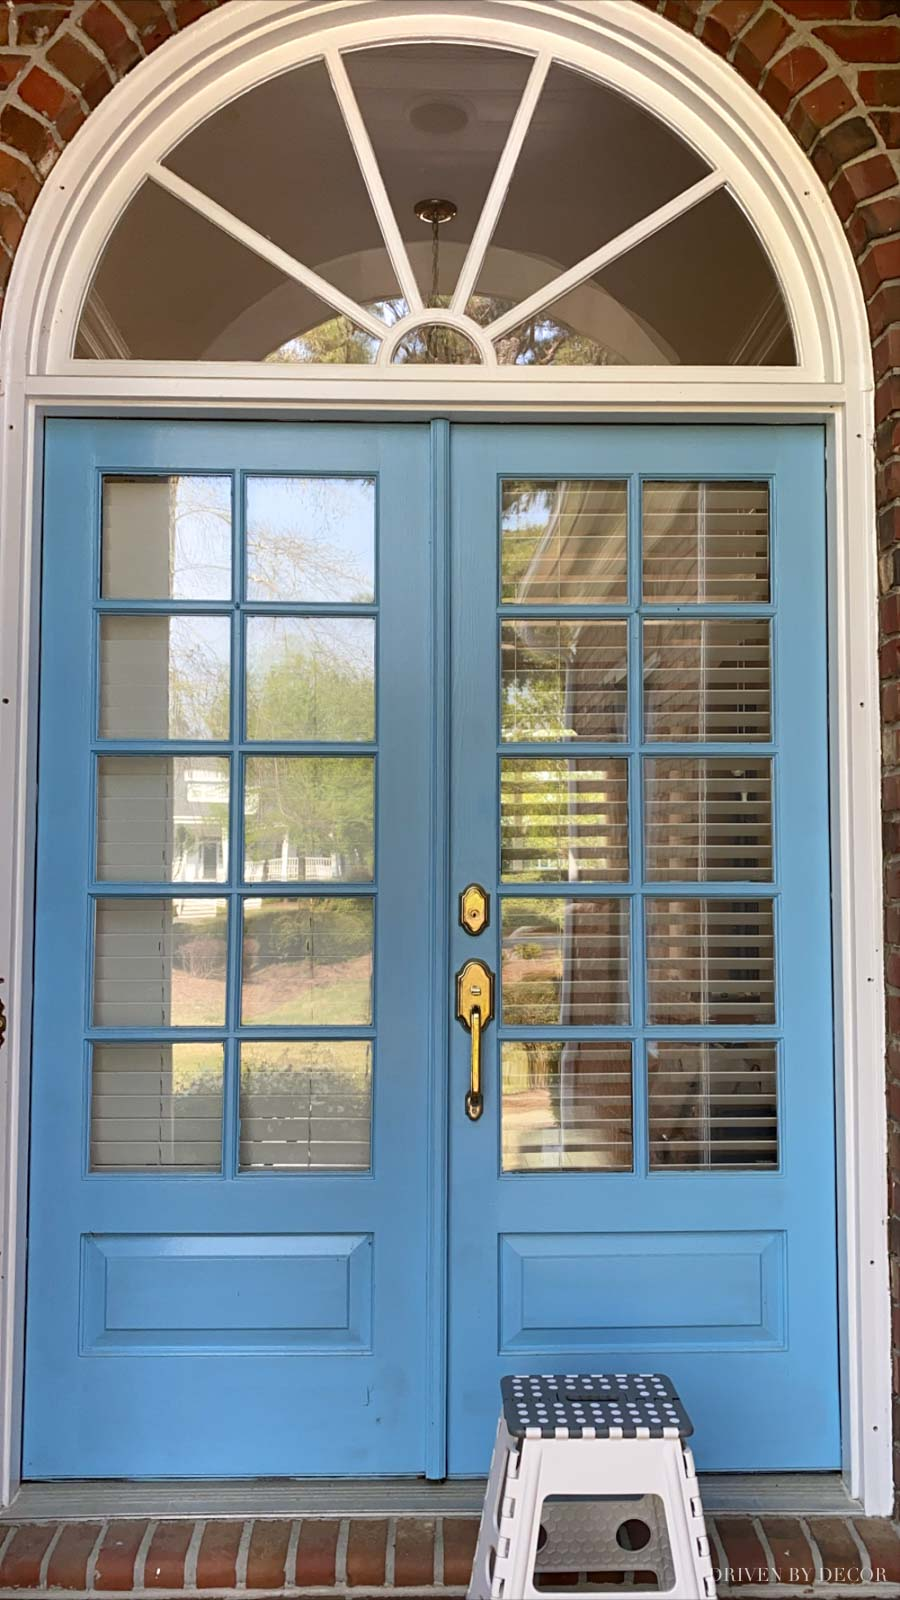 Our front doors before I painted them - click over to see the new color!